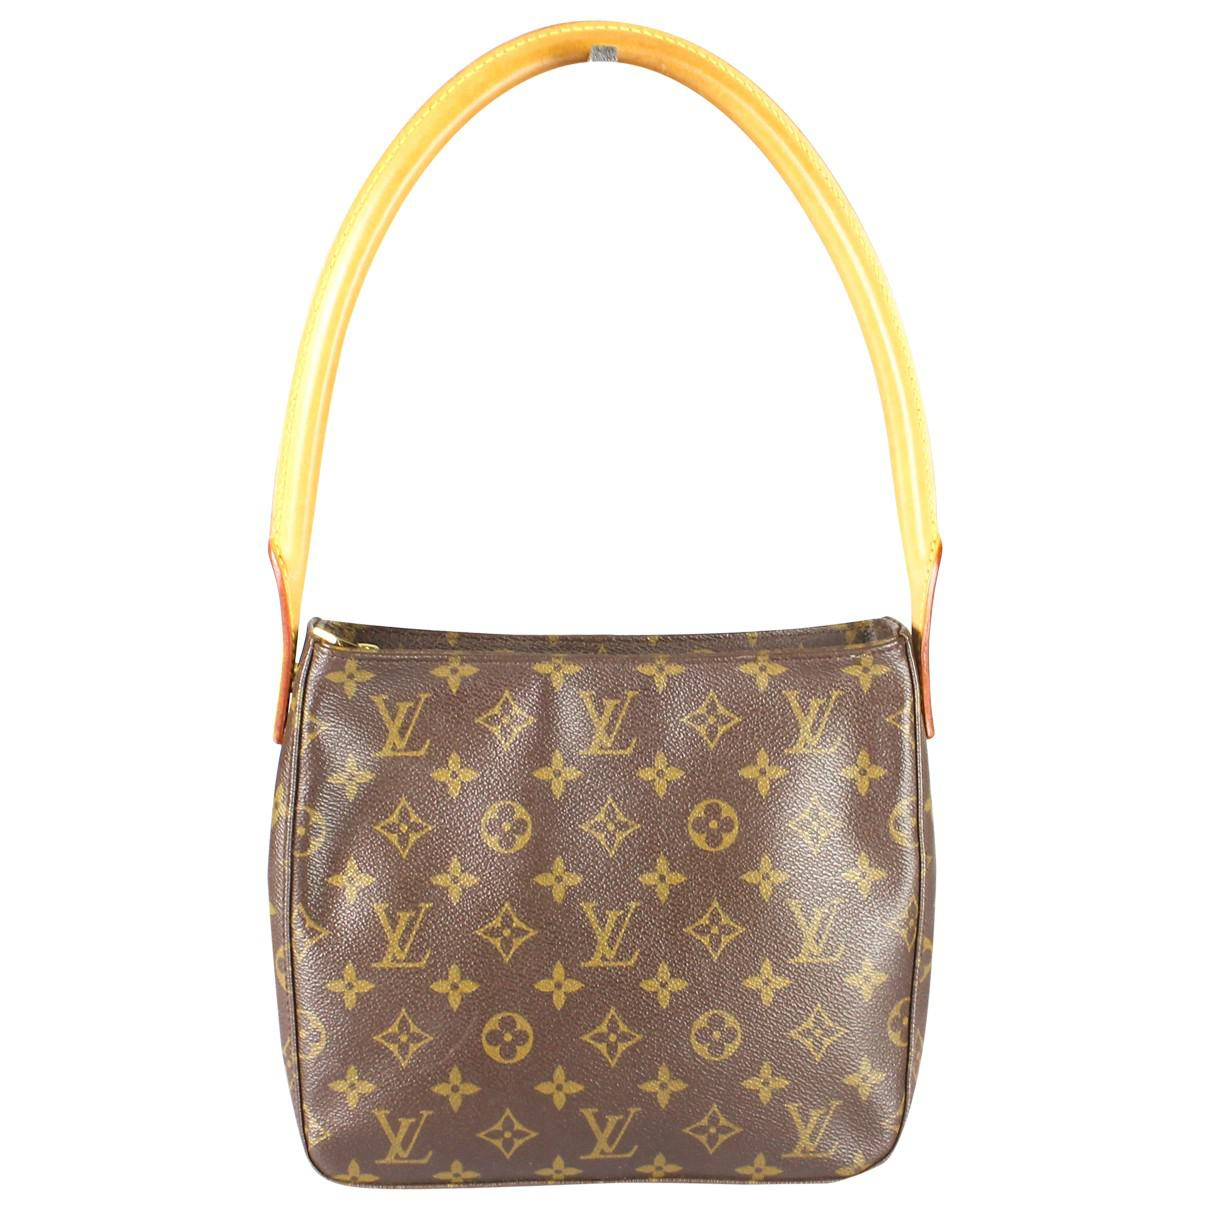 6f589af51321 Gallery. Previously sold at  Vestiaire Collective · Women s Fendi Pequin  Women s Louis Vuitton ...